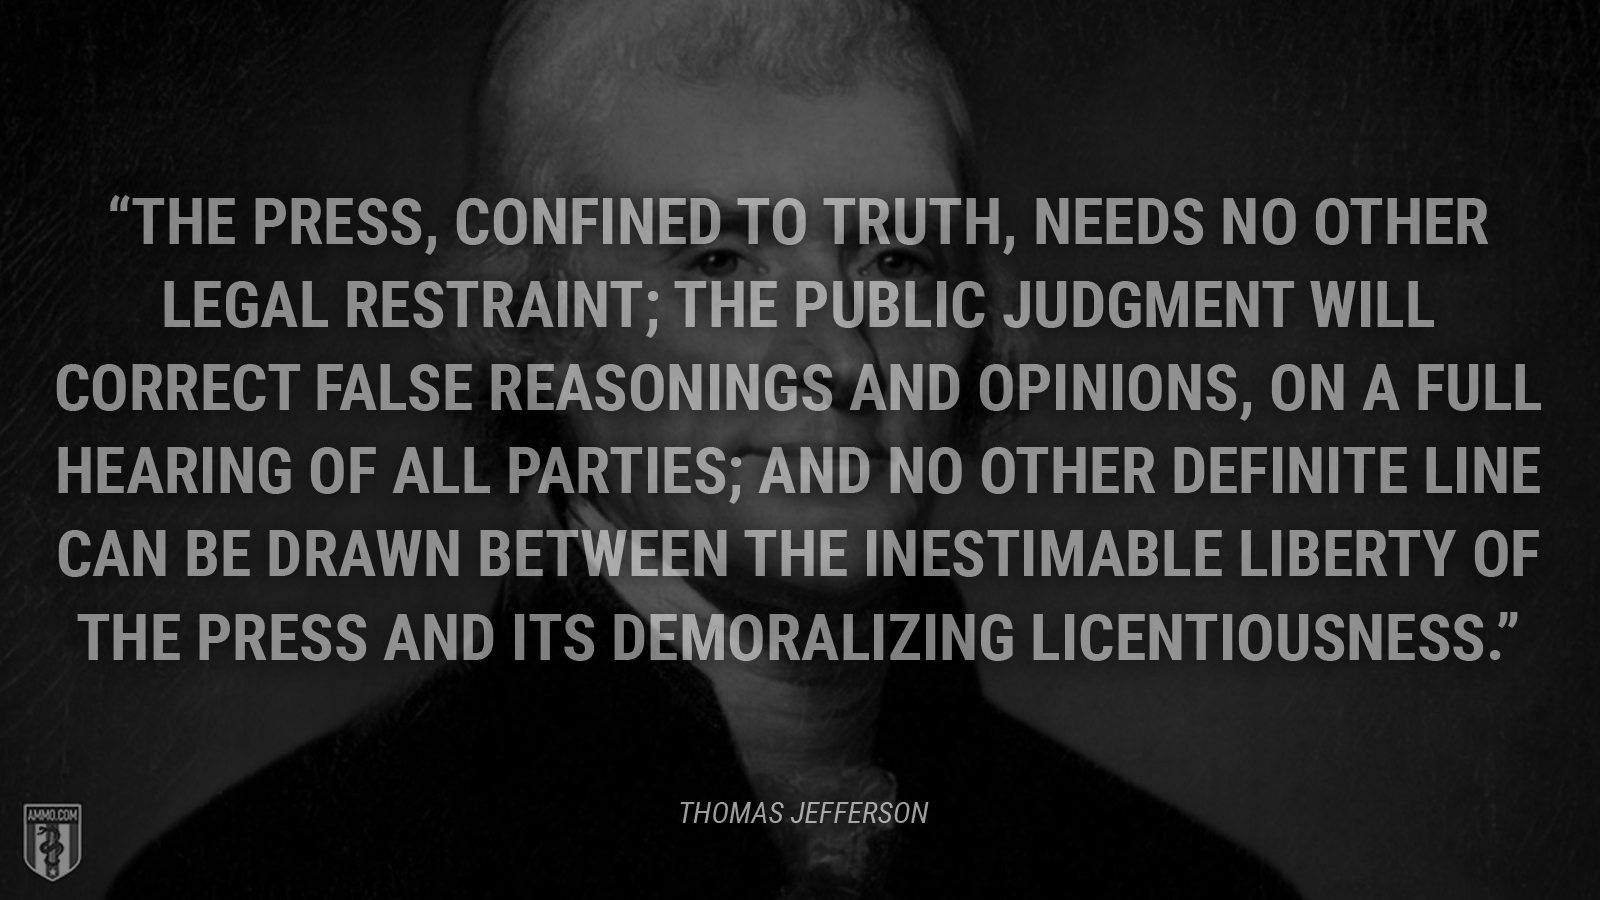 """""""The press, confined to truth, needs no other legal restraint; the public judgment will correct false reasonings and opinions, on a full hearing of all parties; and no other definite line can be drawn between the inestimable liberty of the press and its demoralizing licentiousness."""" - Thomas Jefferson"""